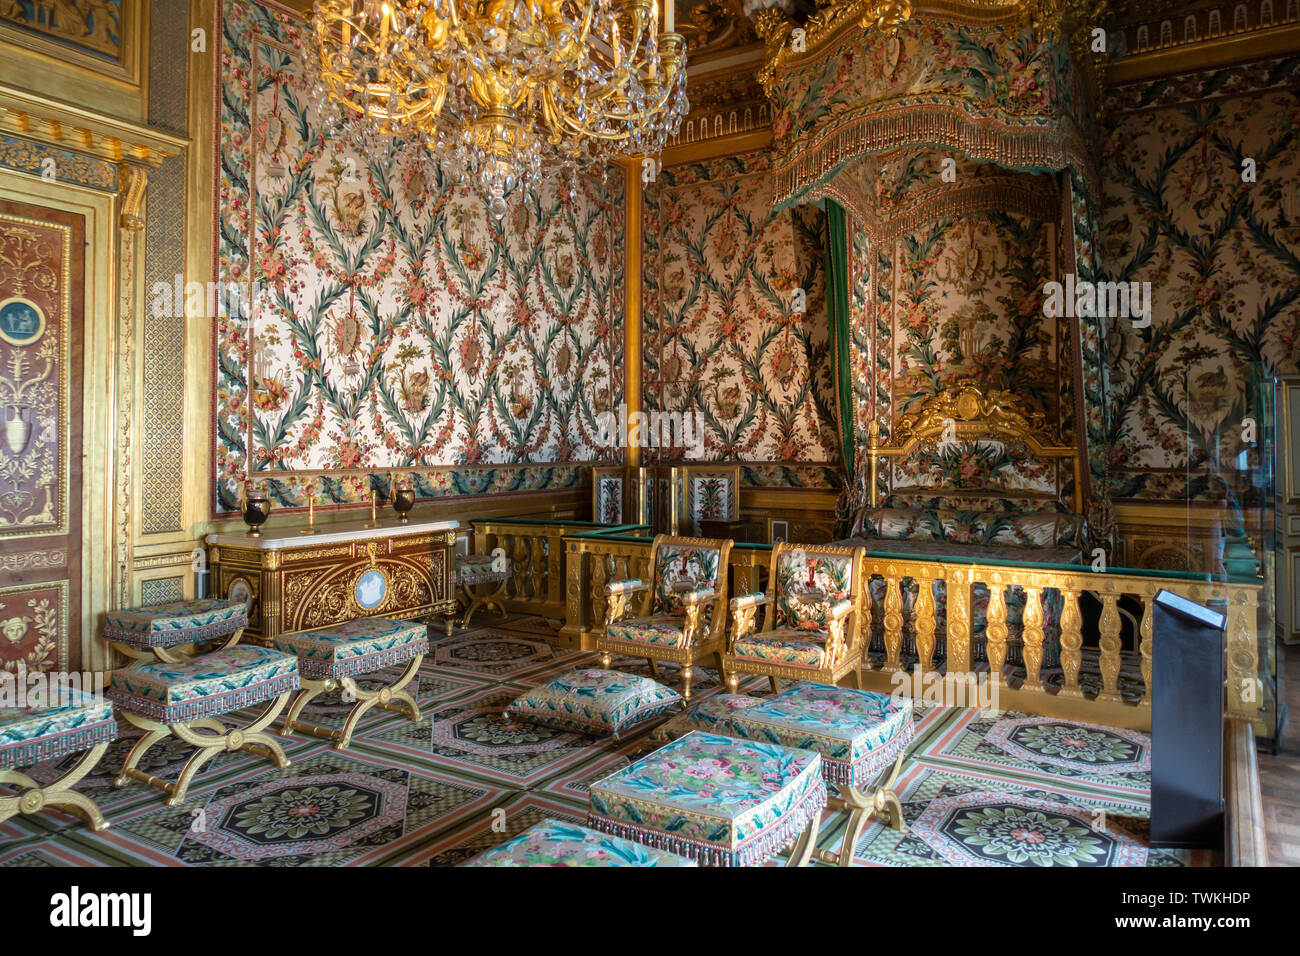 The Queen's and the Empress's Bedchamber in Château de Fontainebleau, Seine-et-Marne, Île-de-France region of France - Stock Image